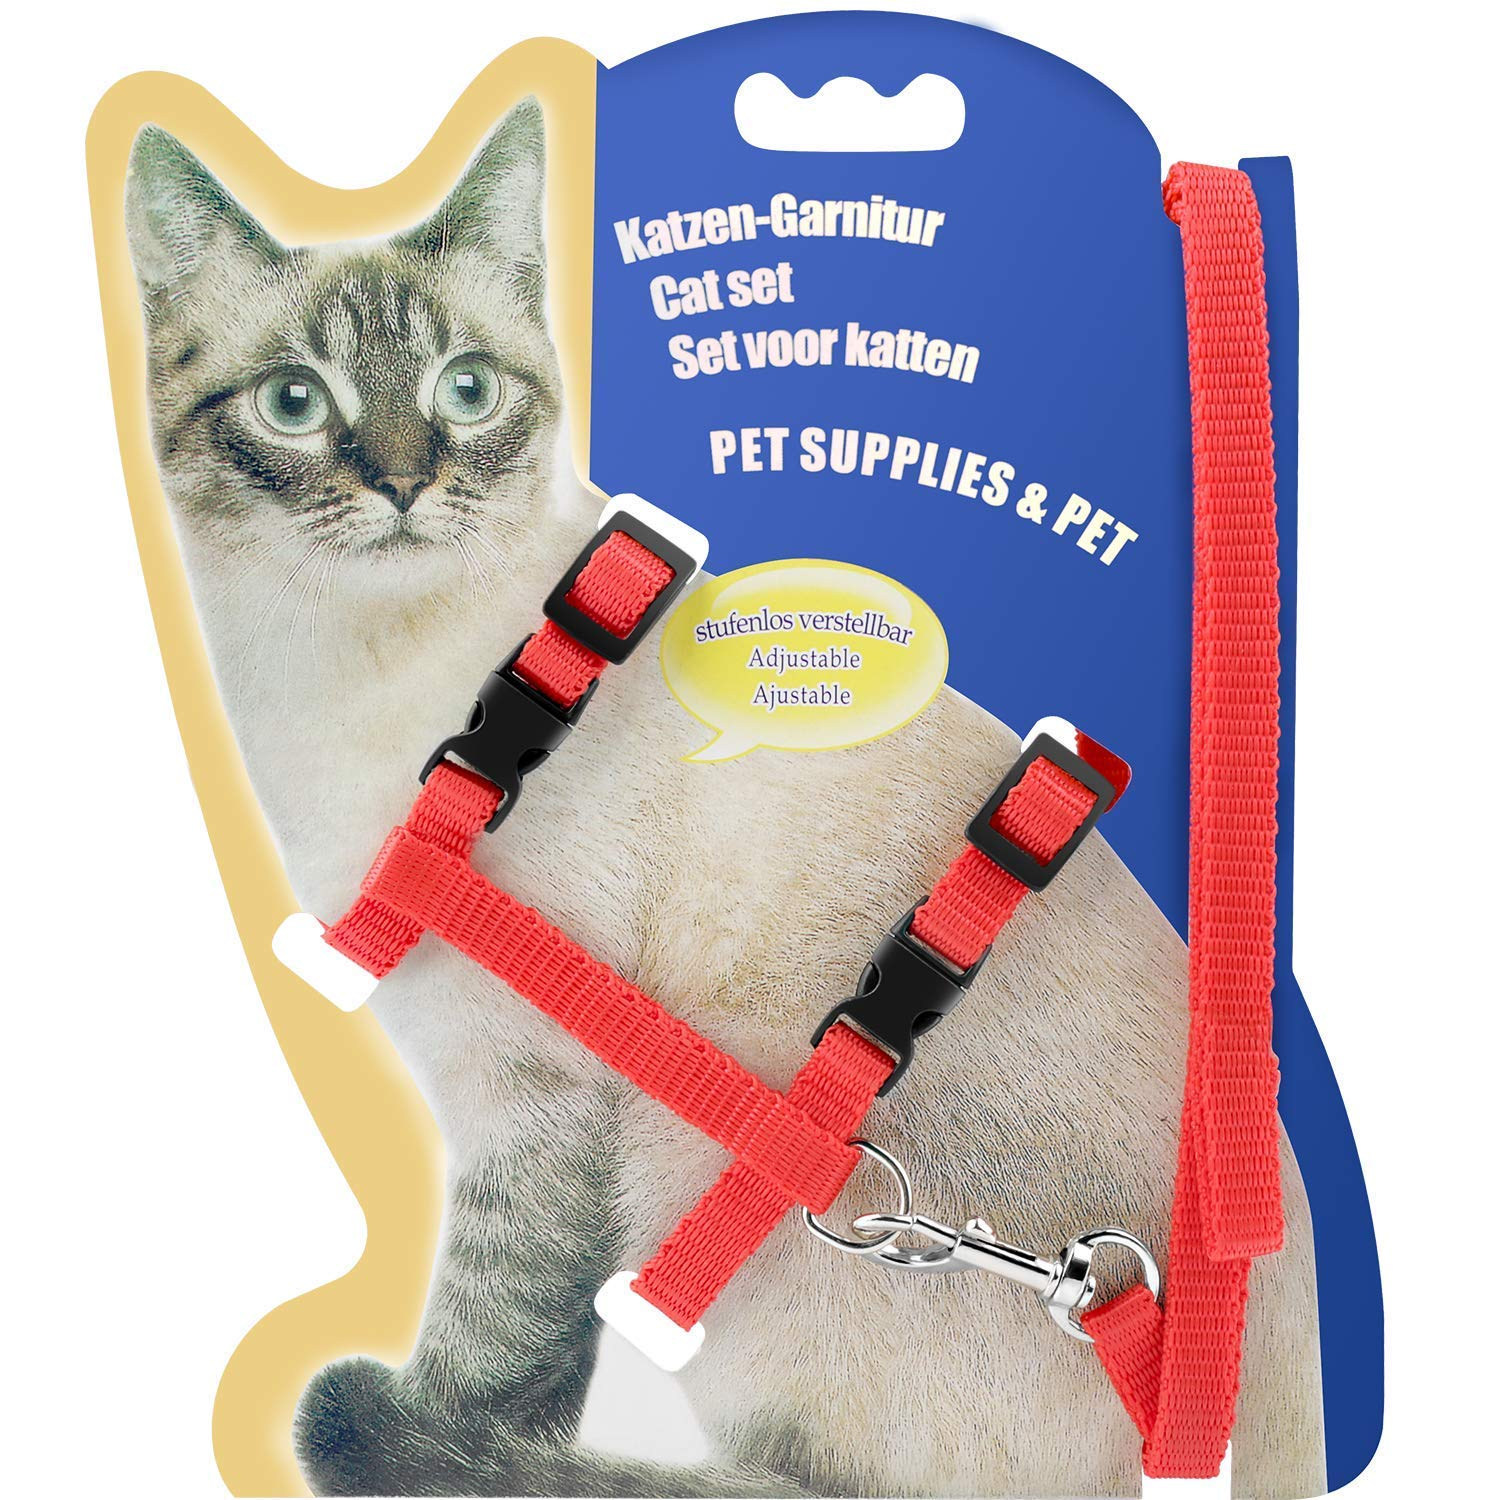 BAODATUI Cat Harness, Adjustable Harness Nylon Strap Collar with Leash, Cat Leash and Harness Set, for Cat and Small Pet Walking (Red)